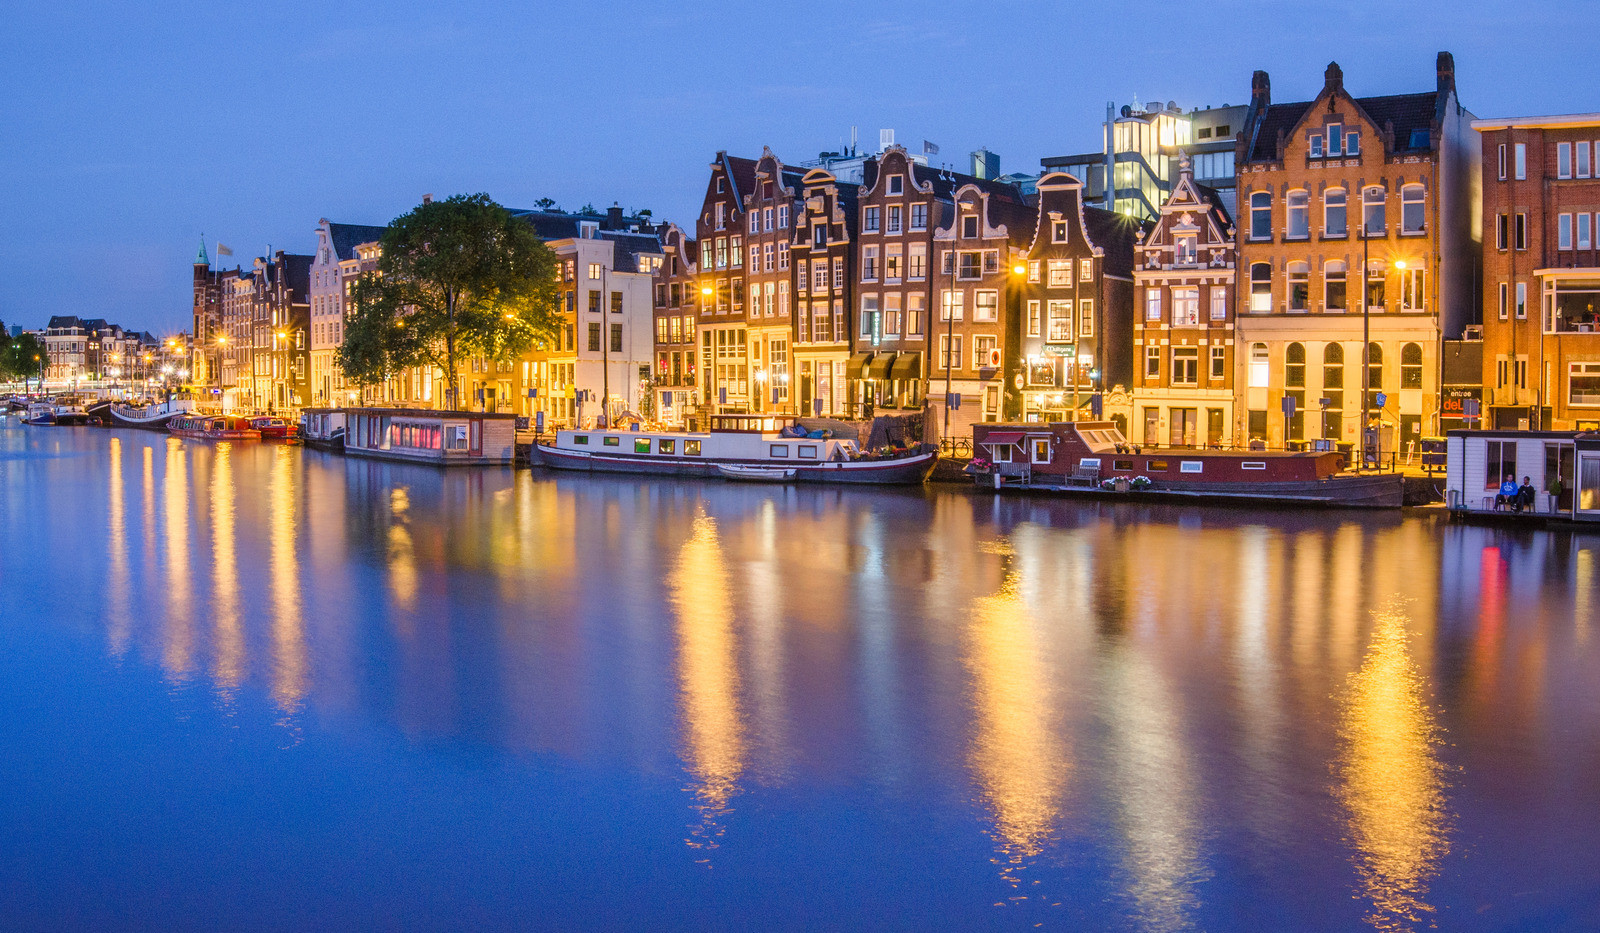 Canva - Houses and Amstel canal at night